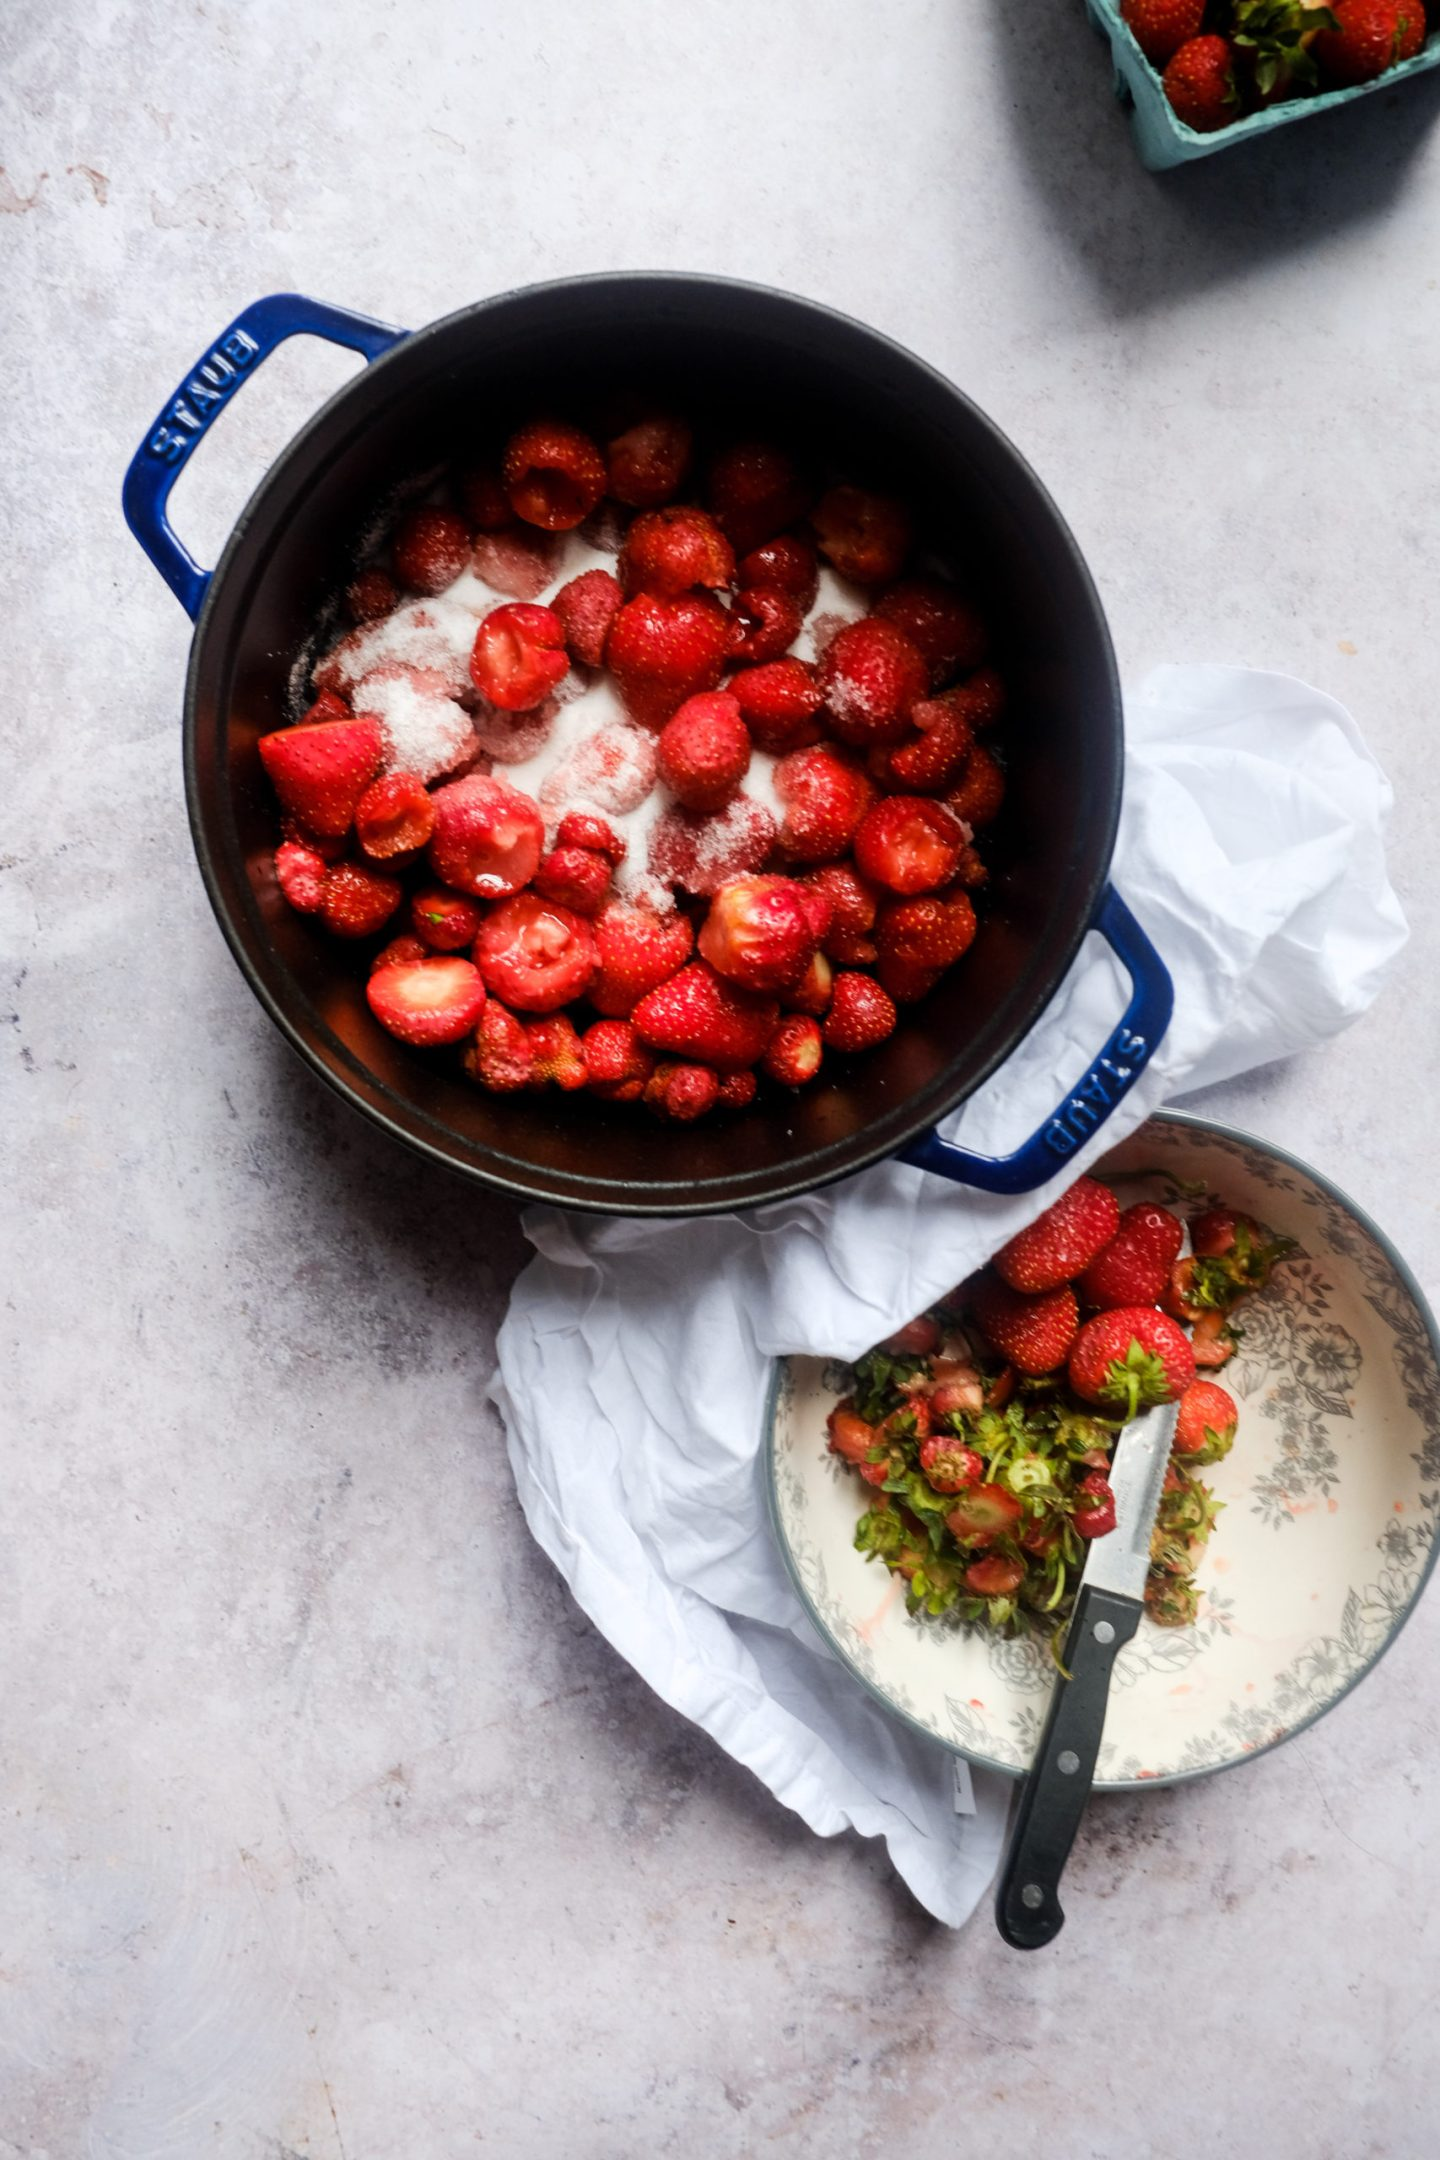 Chocolate and Lace shares her recipe for easy Strawberry Jam